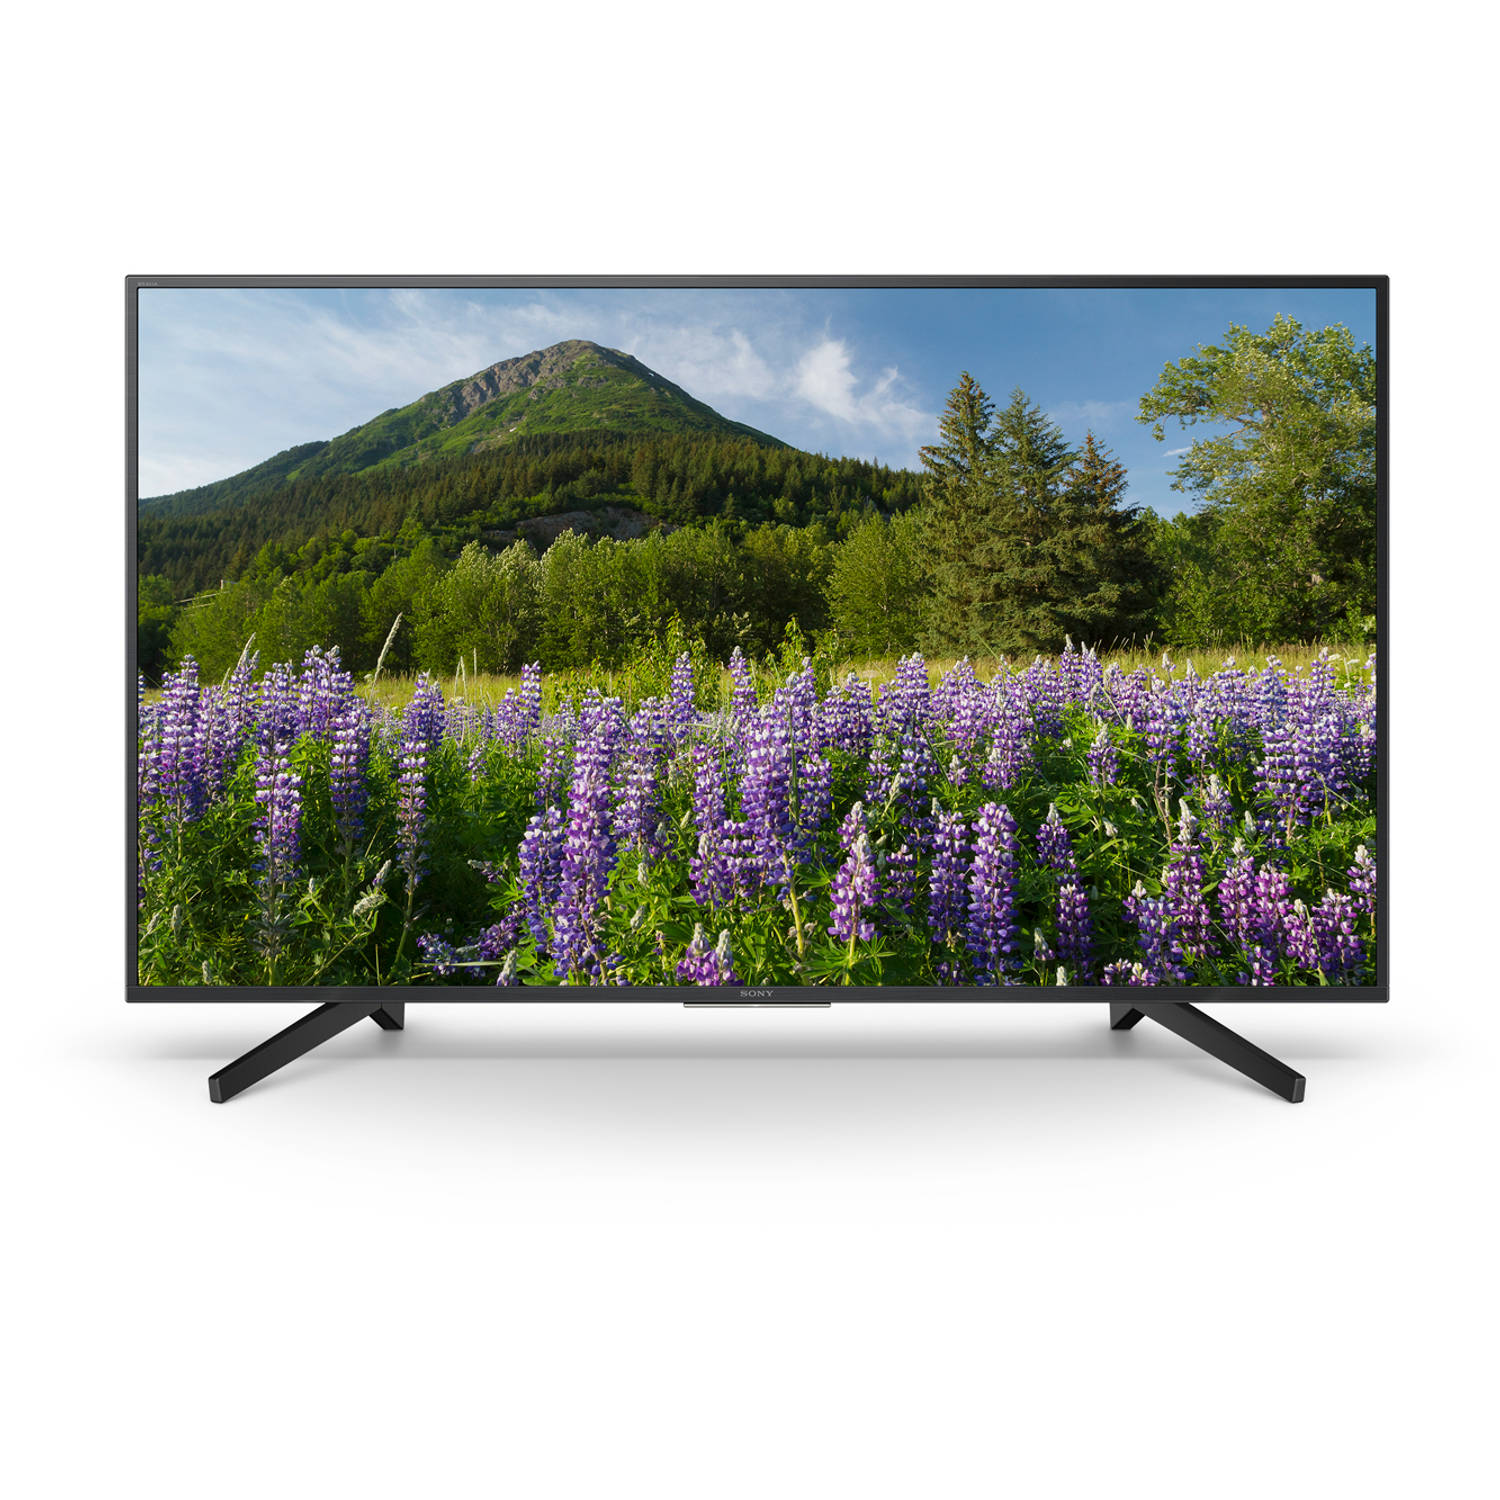 Sony KD49XF7000BAEP 4K Ultra HD TV